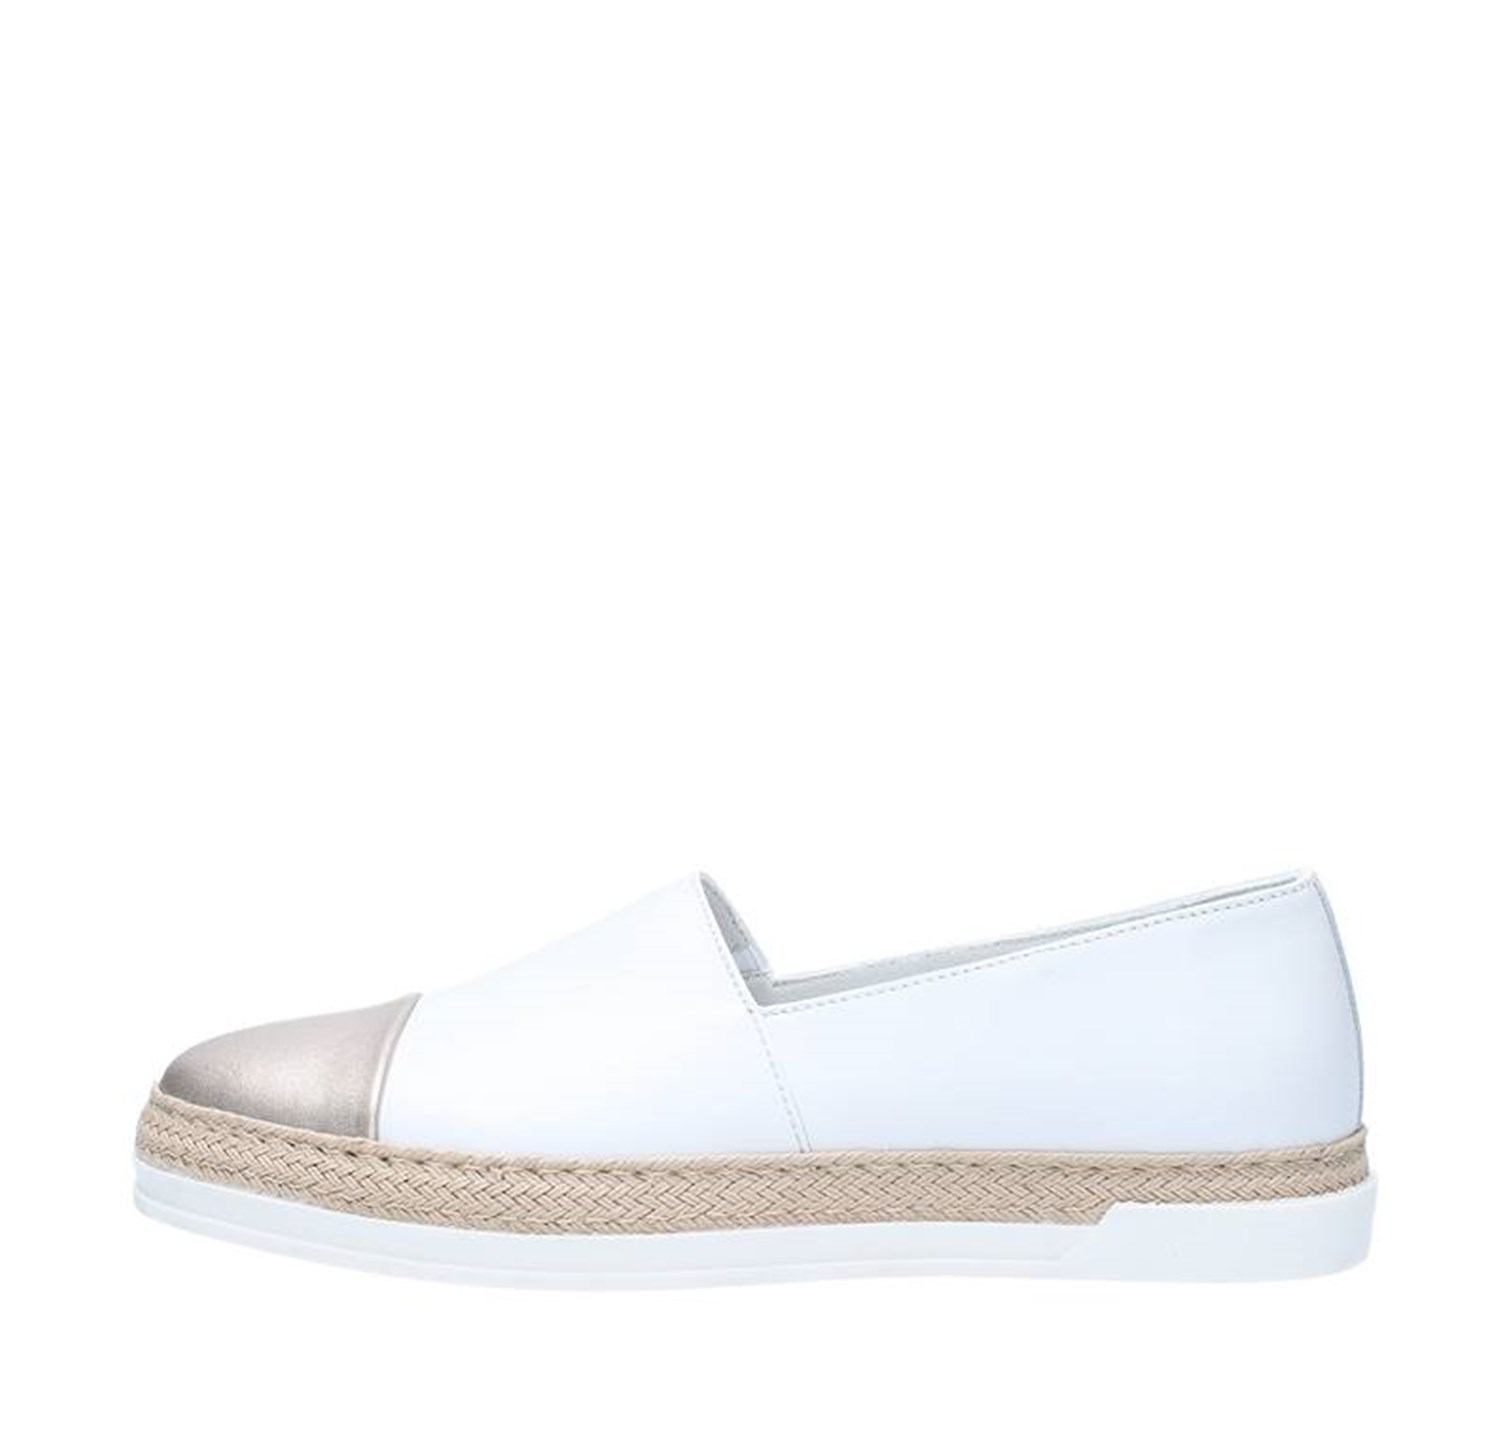 Triver Flight Shoes Woman Loafers WHITE 197-19B